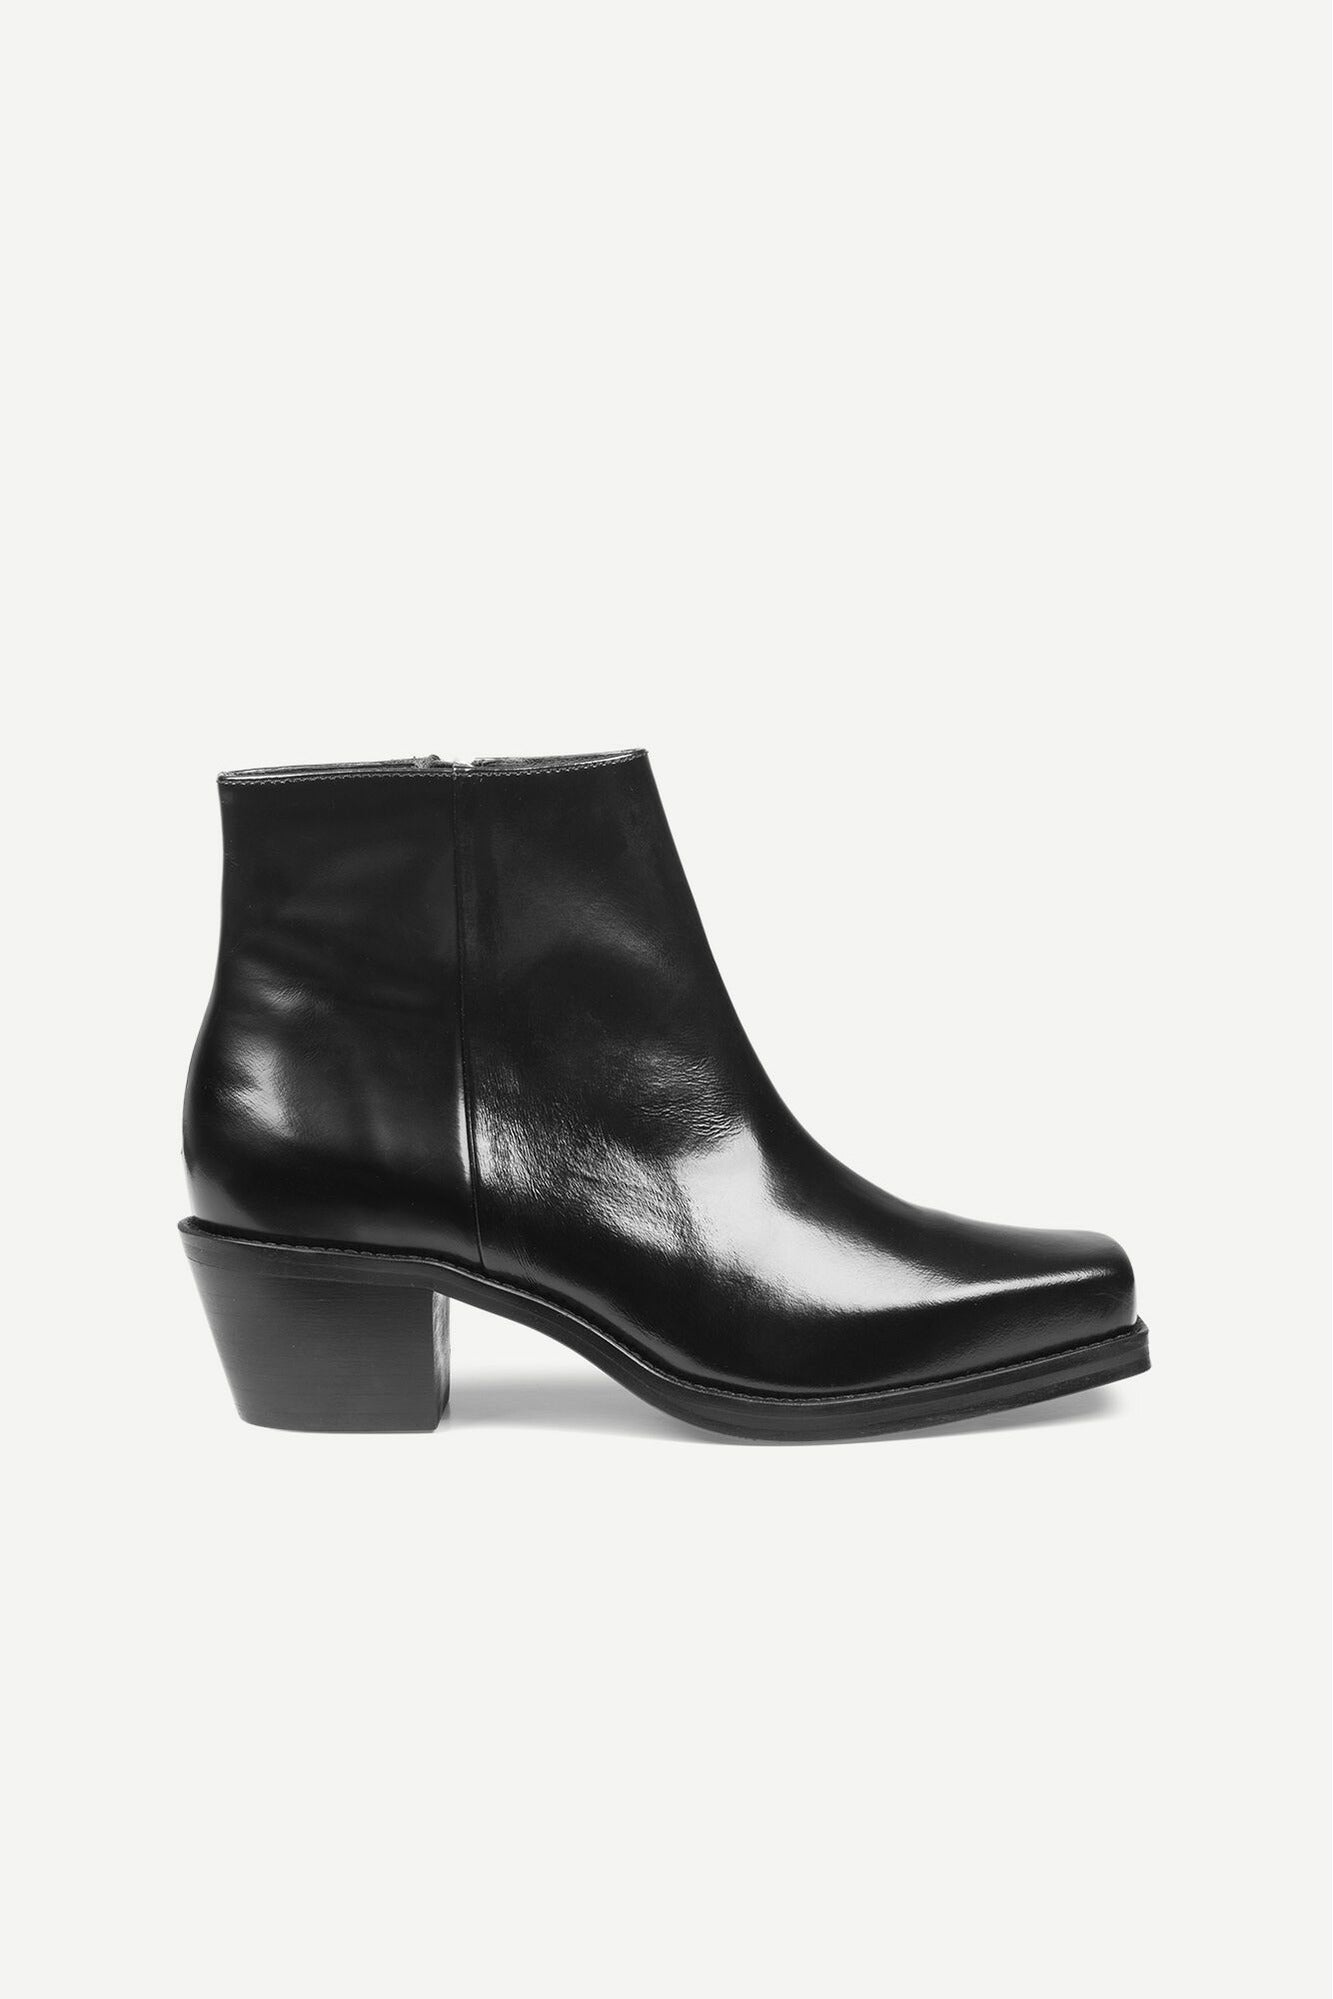 SQUARE TOE SHINY BLACK LEATHER BOOTS - BEYOND STUDIOS